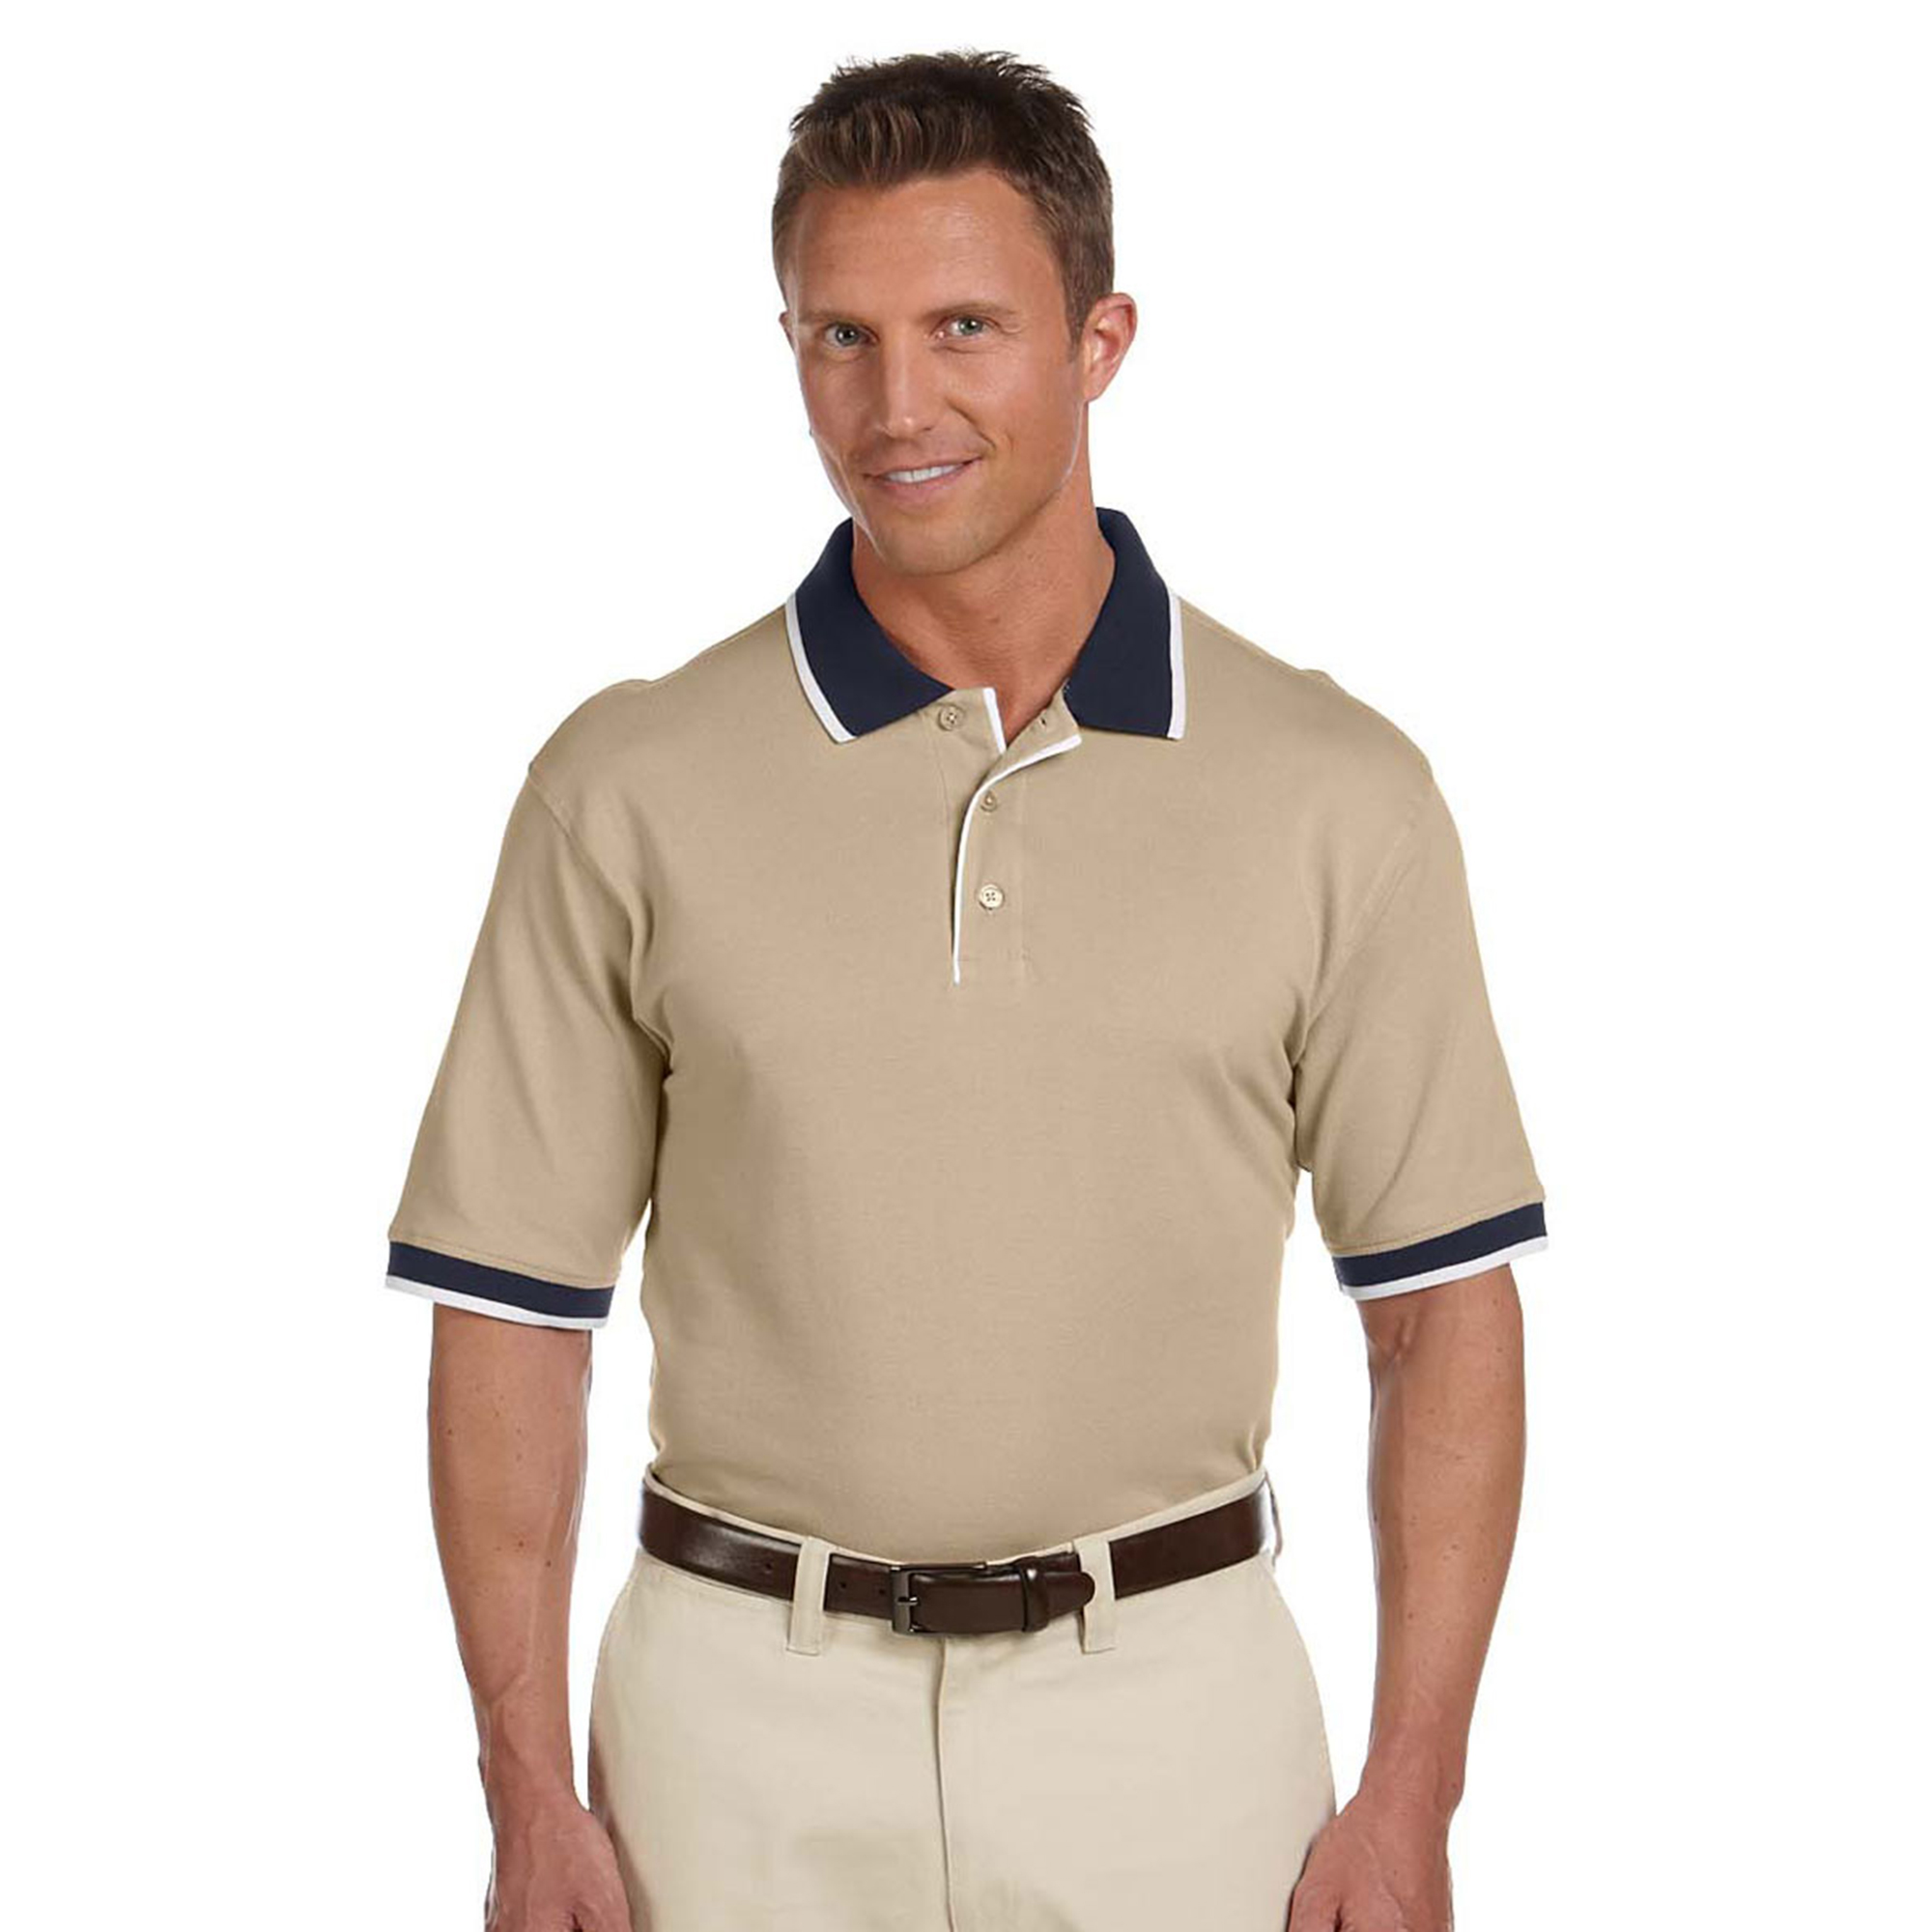 Harriton M250 Men's Collar Three Buttons Comfort Polo at Sears.com